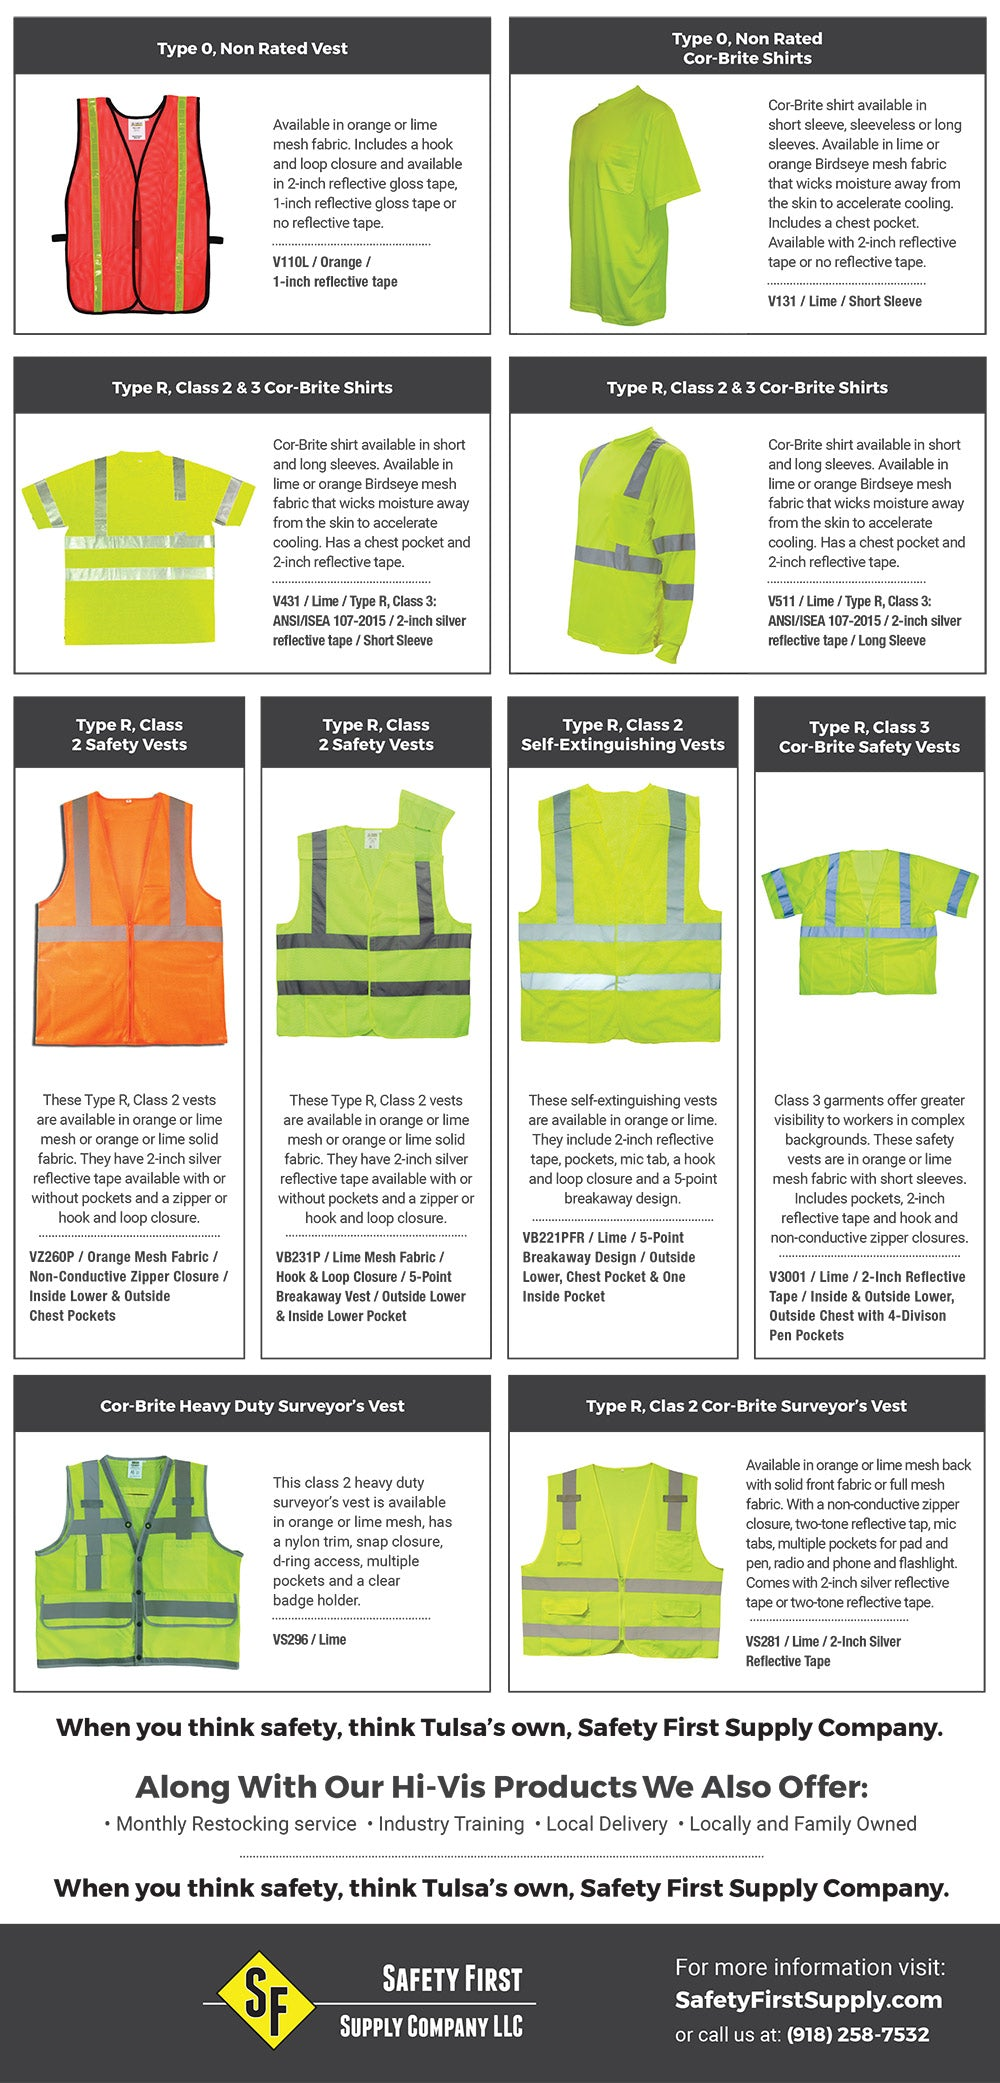 Hi-Vis Safety Vests and Products